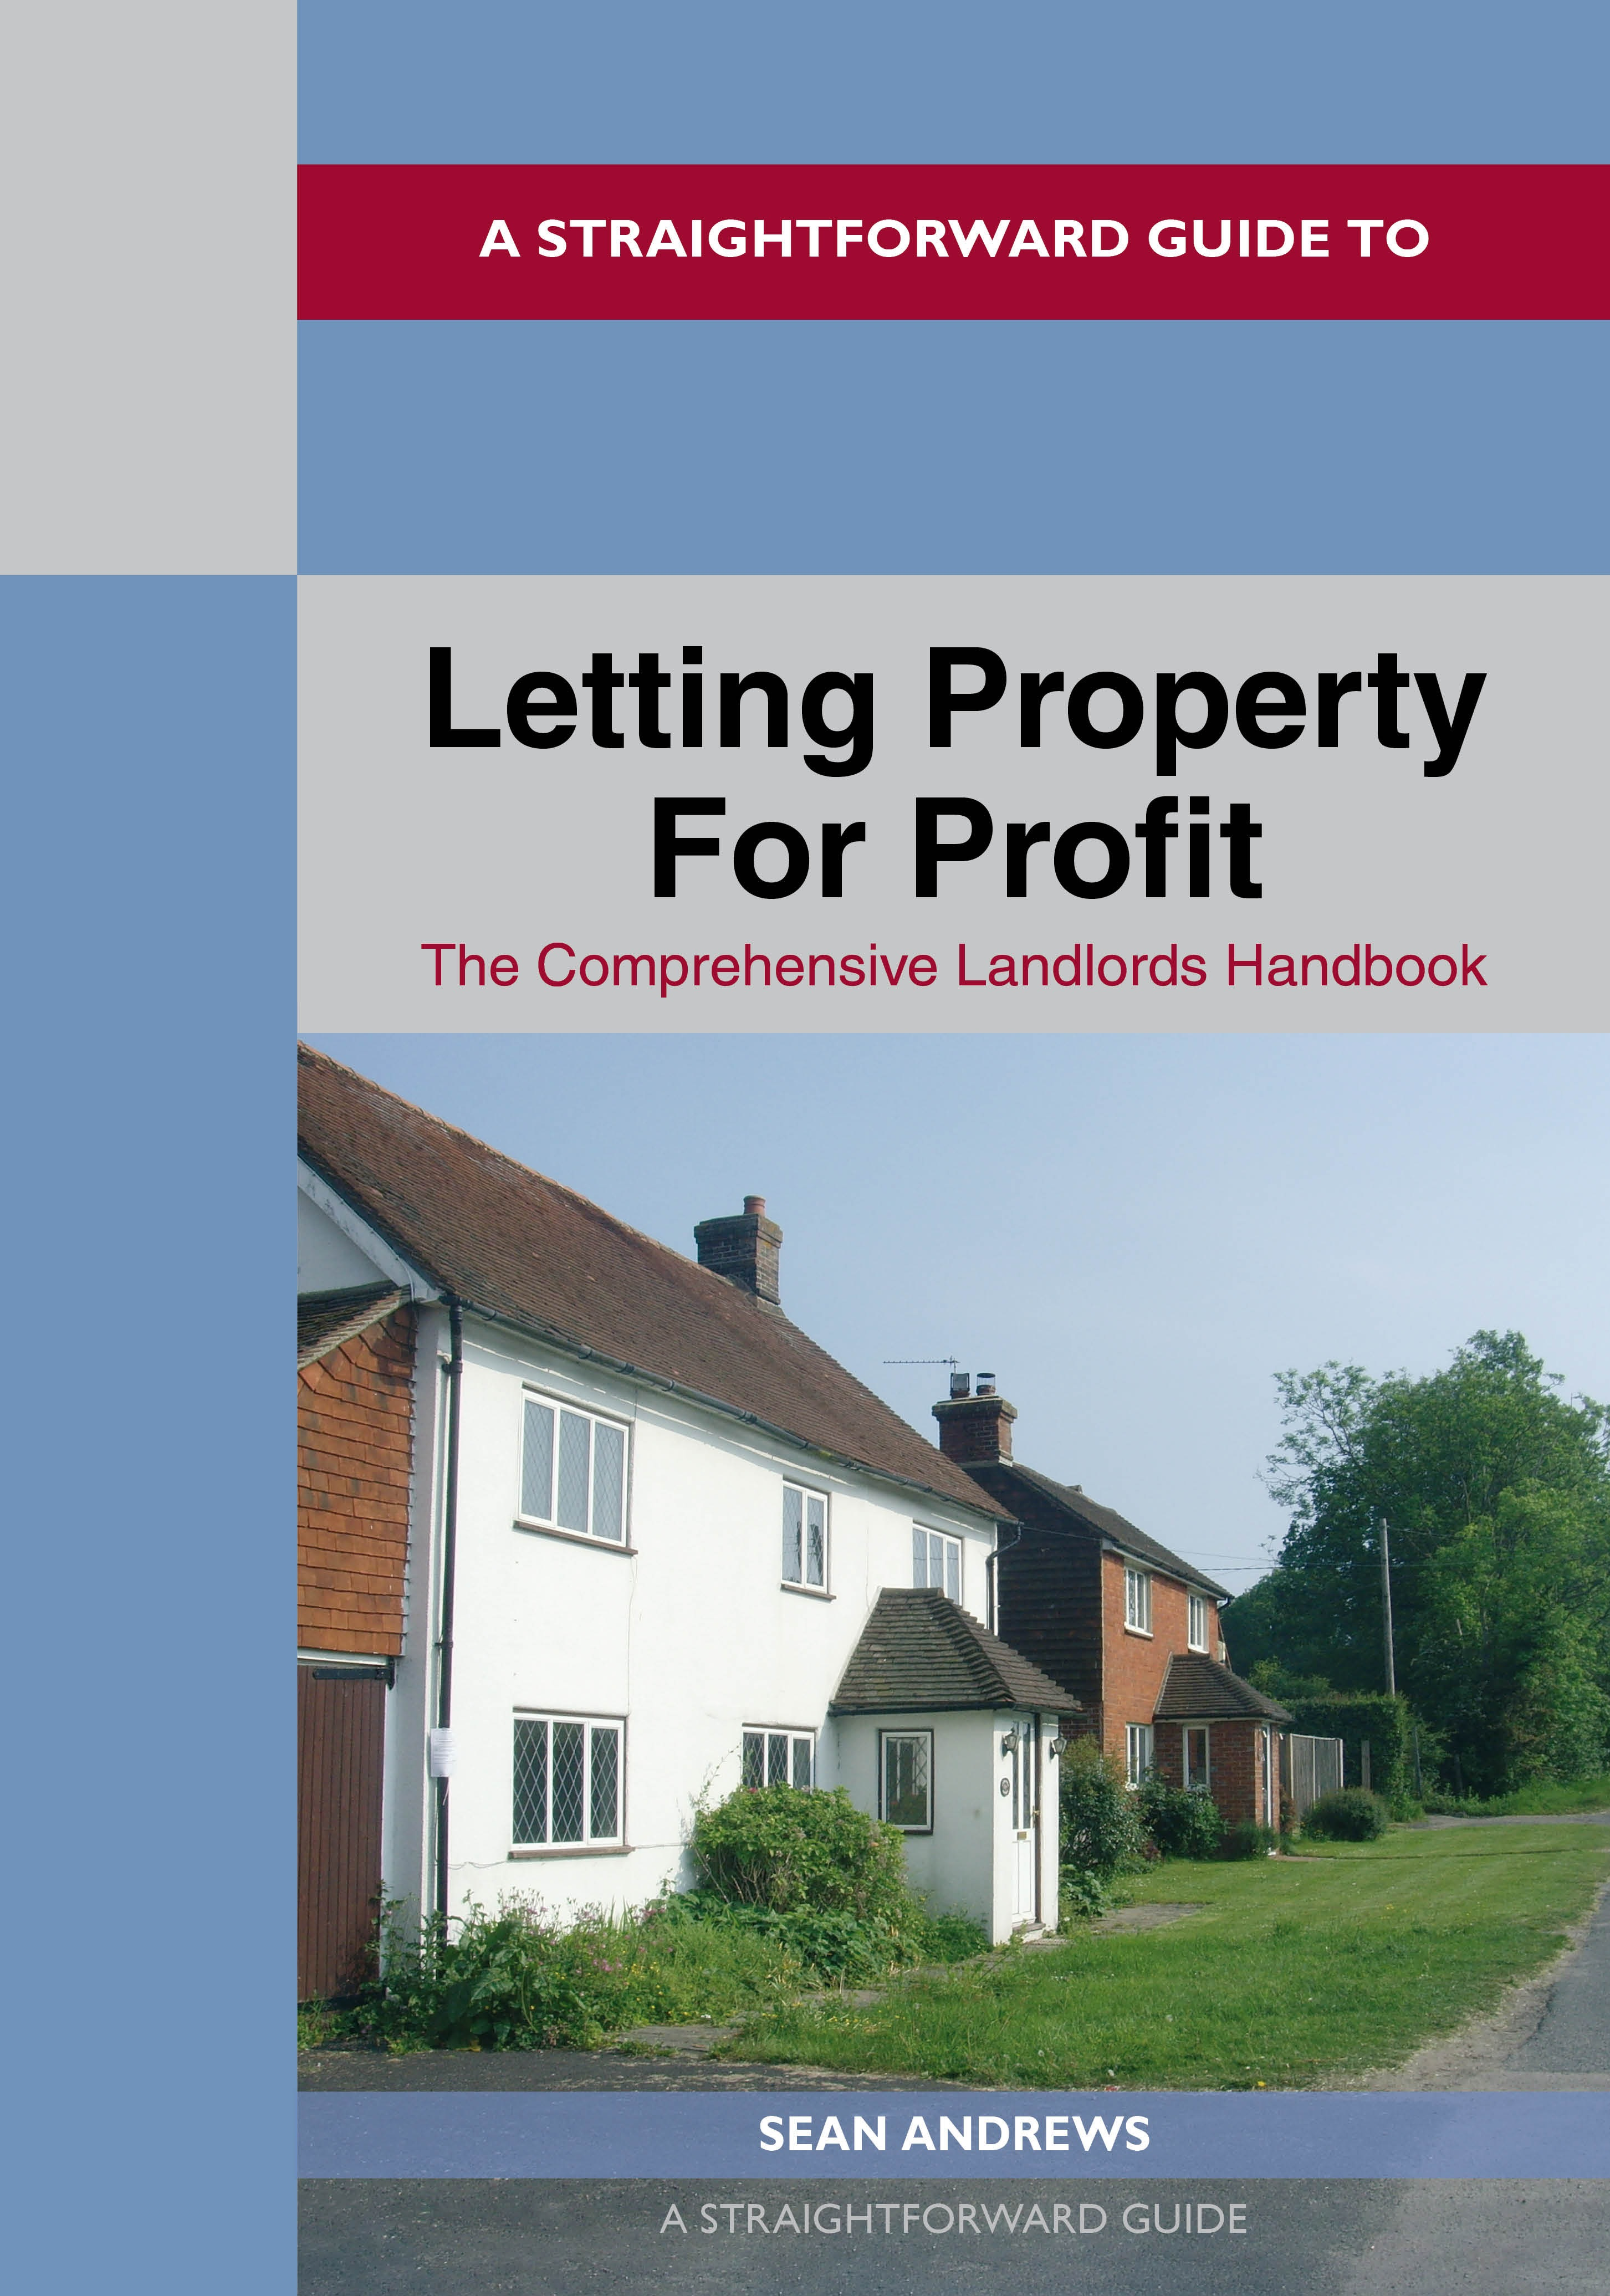 Letting Property for Profit book cover